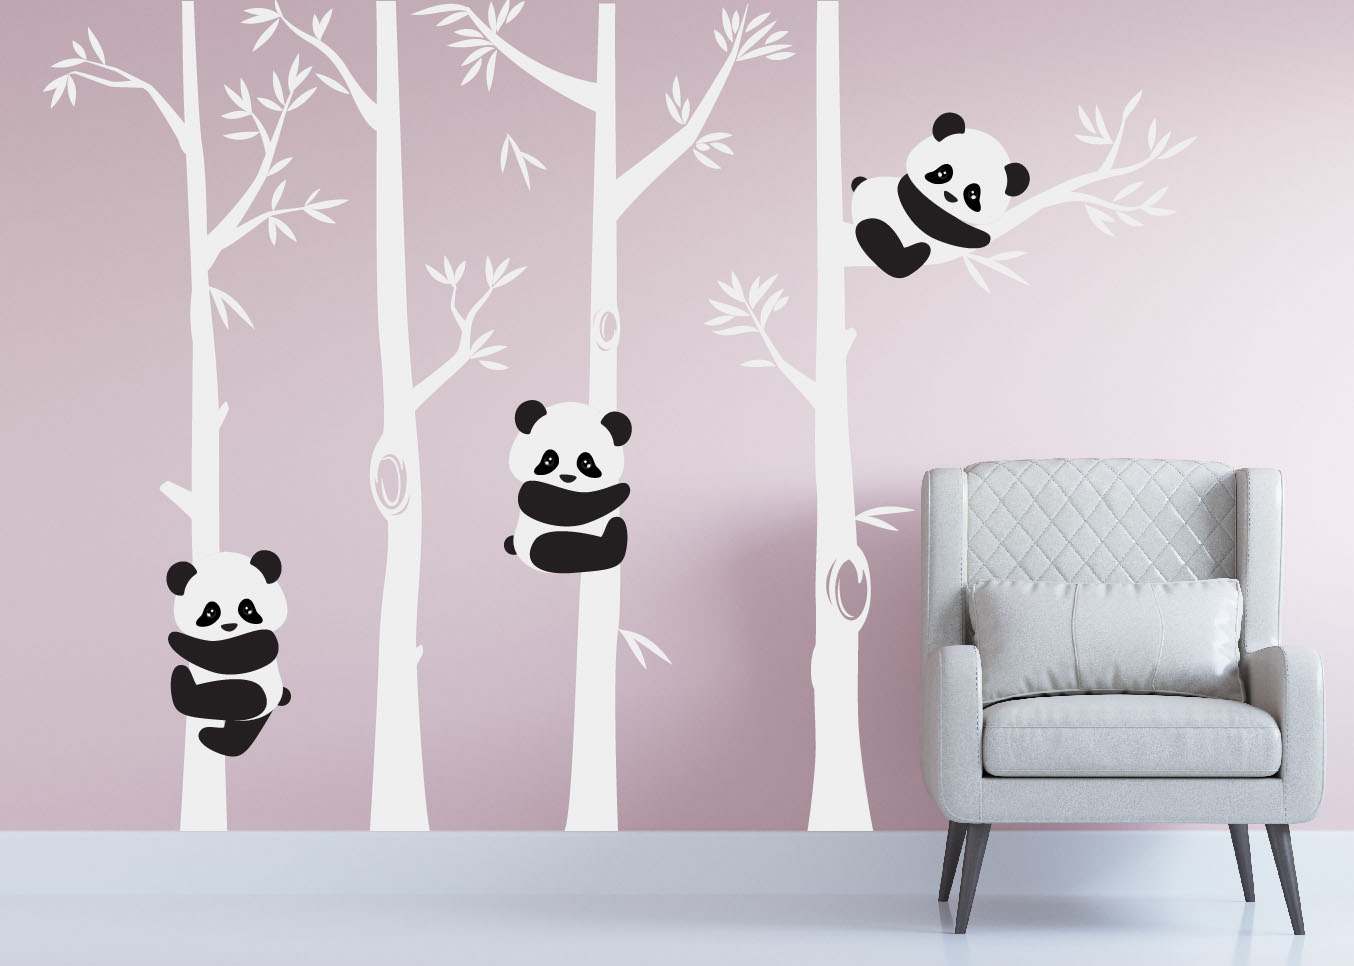 panda-bear-tree-bamboo-wall-decal-white.jpg